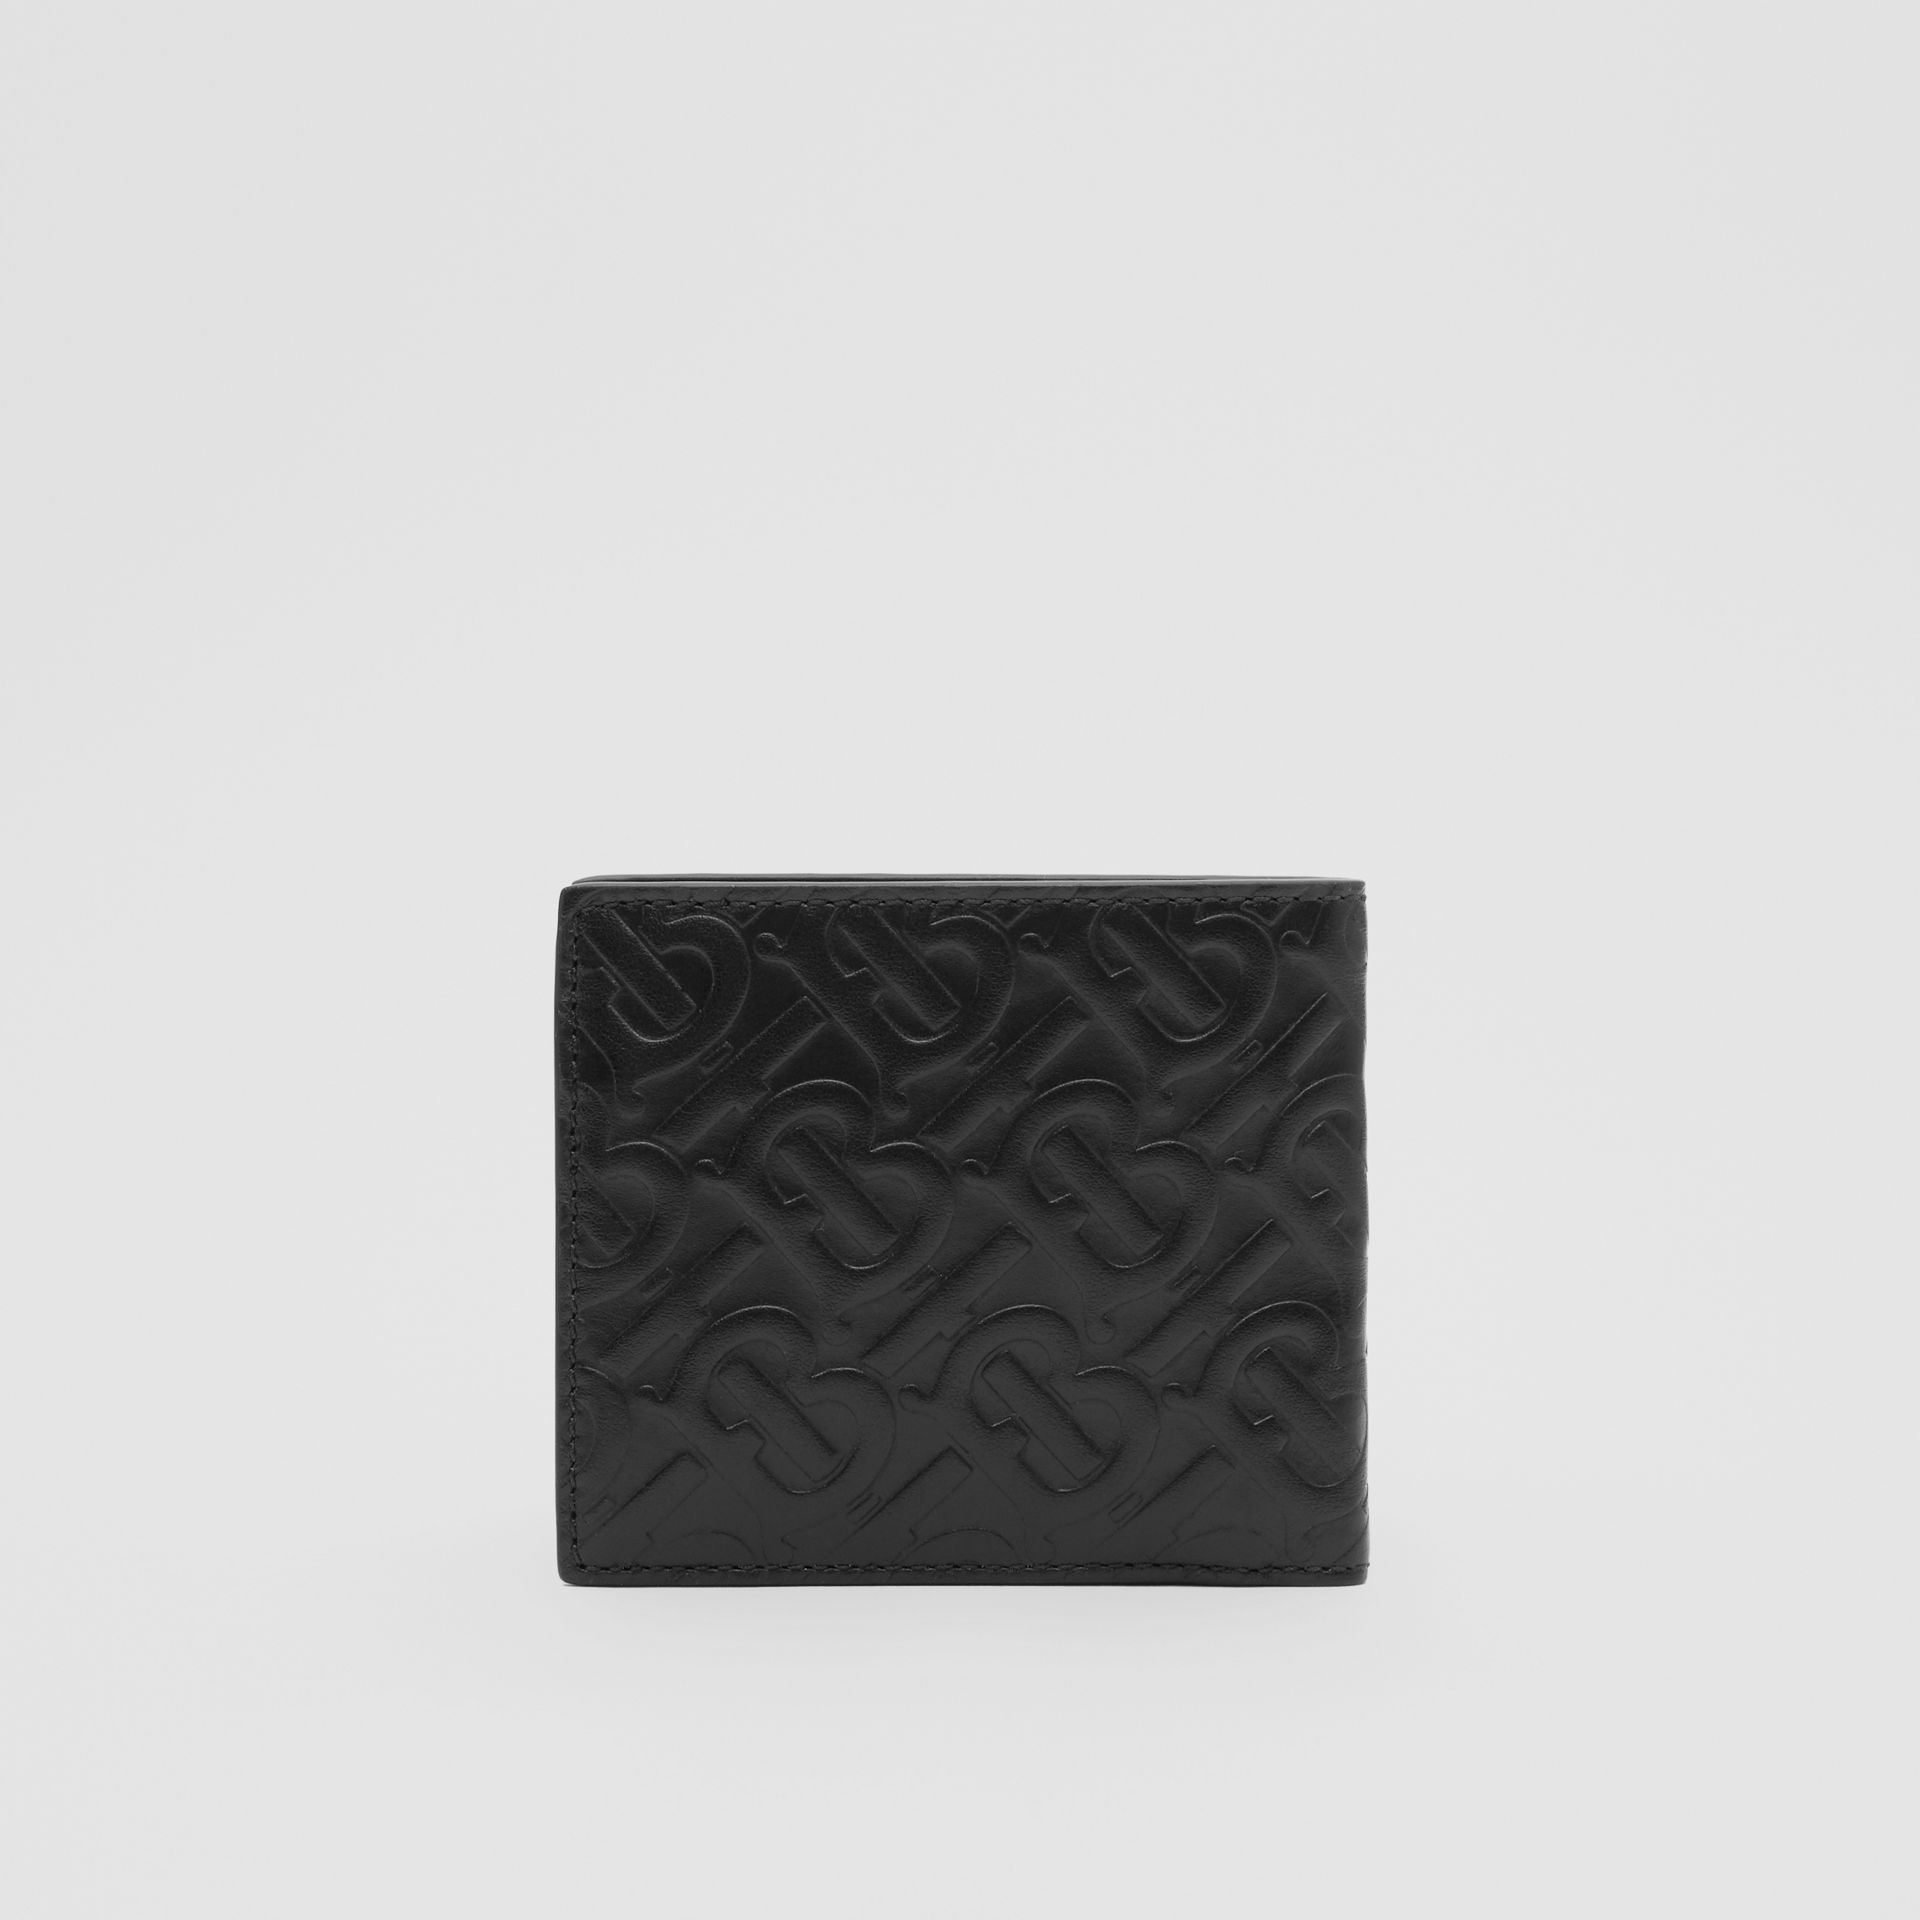 Monogram Leather International Bifold Coin Wallet in Black - Men | Burberry - gallery image 4